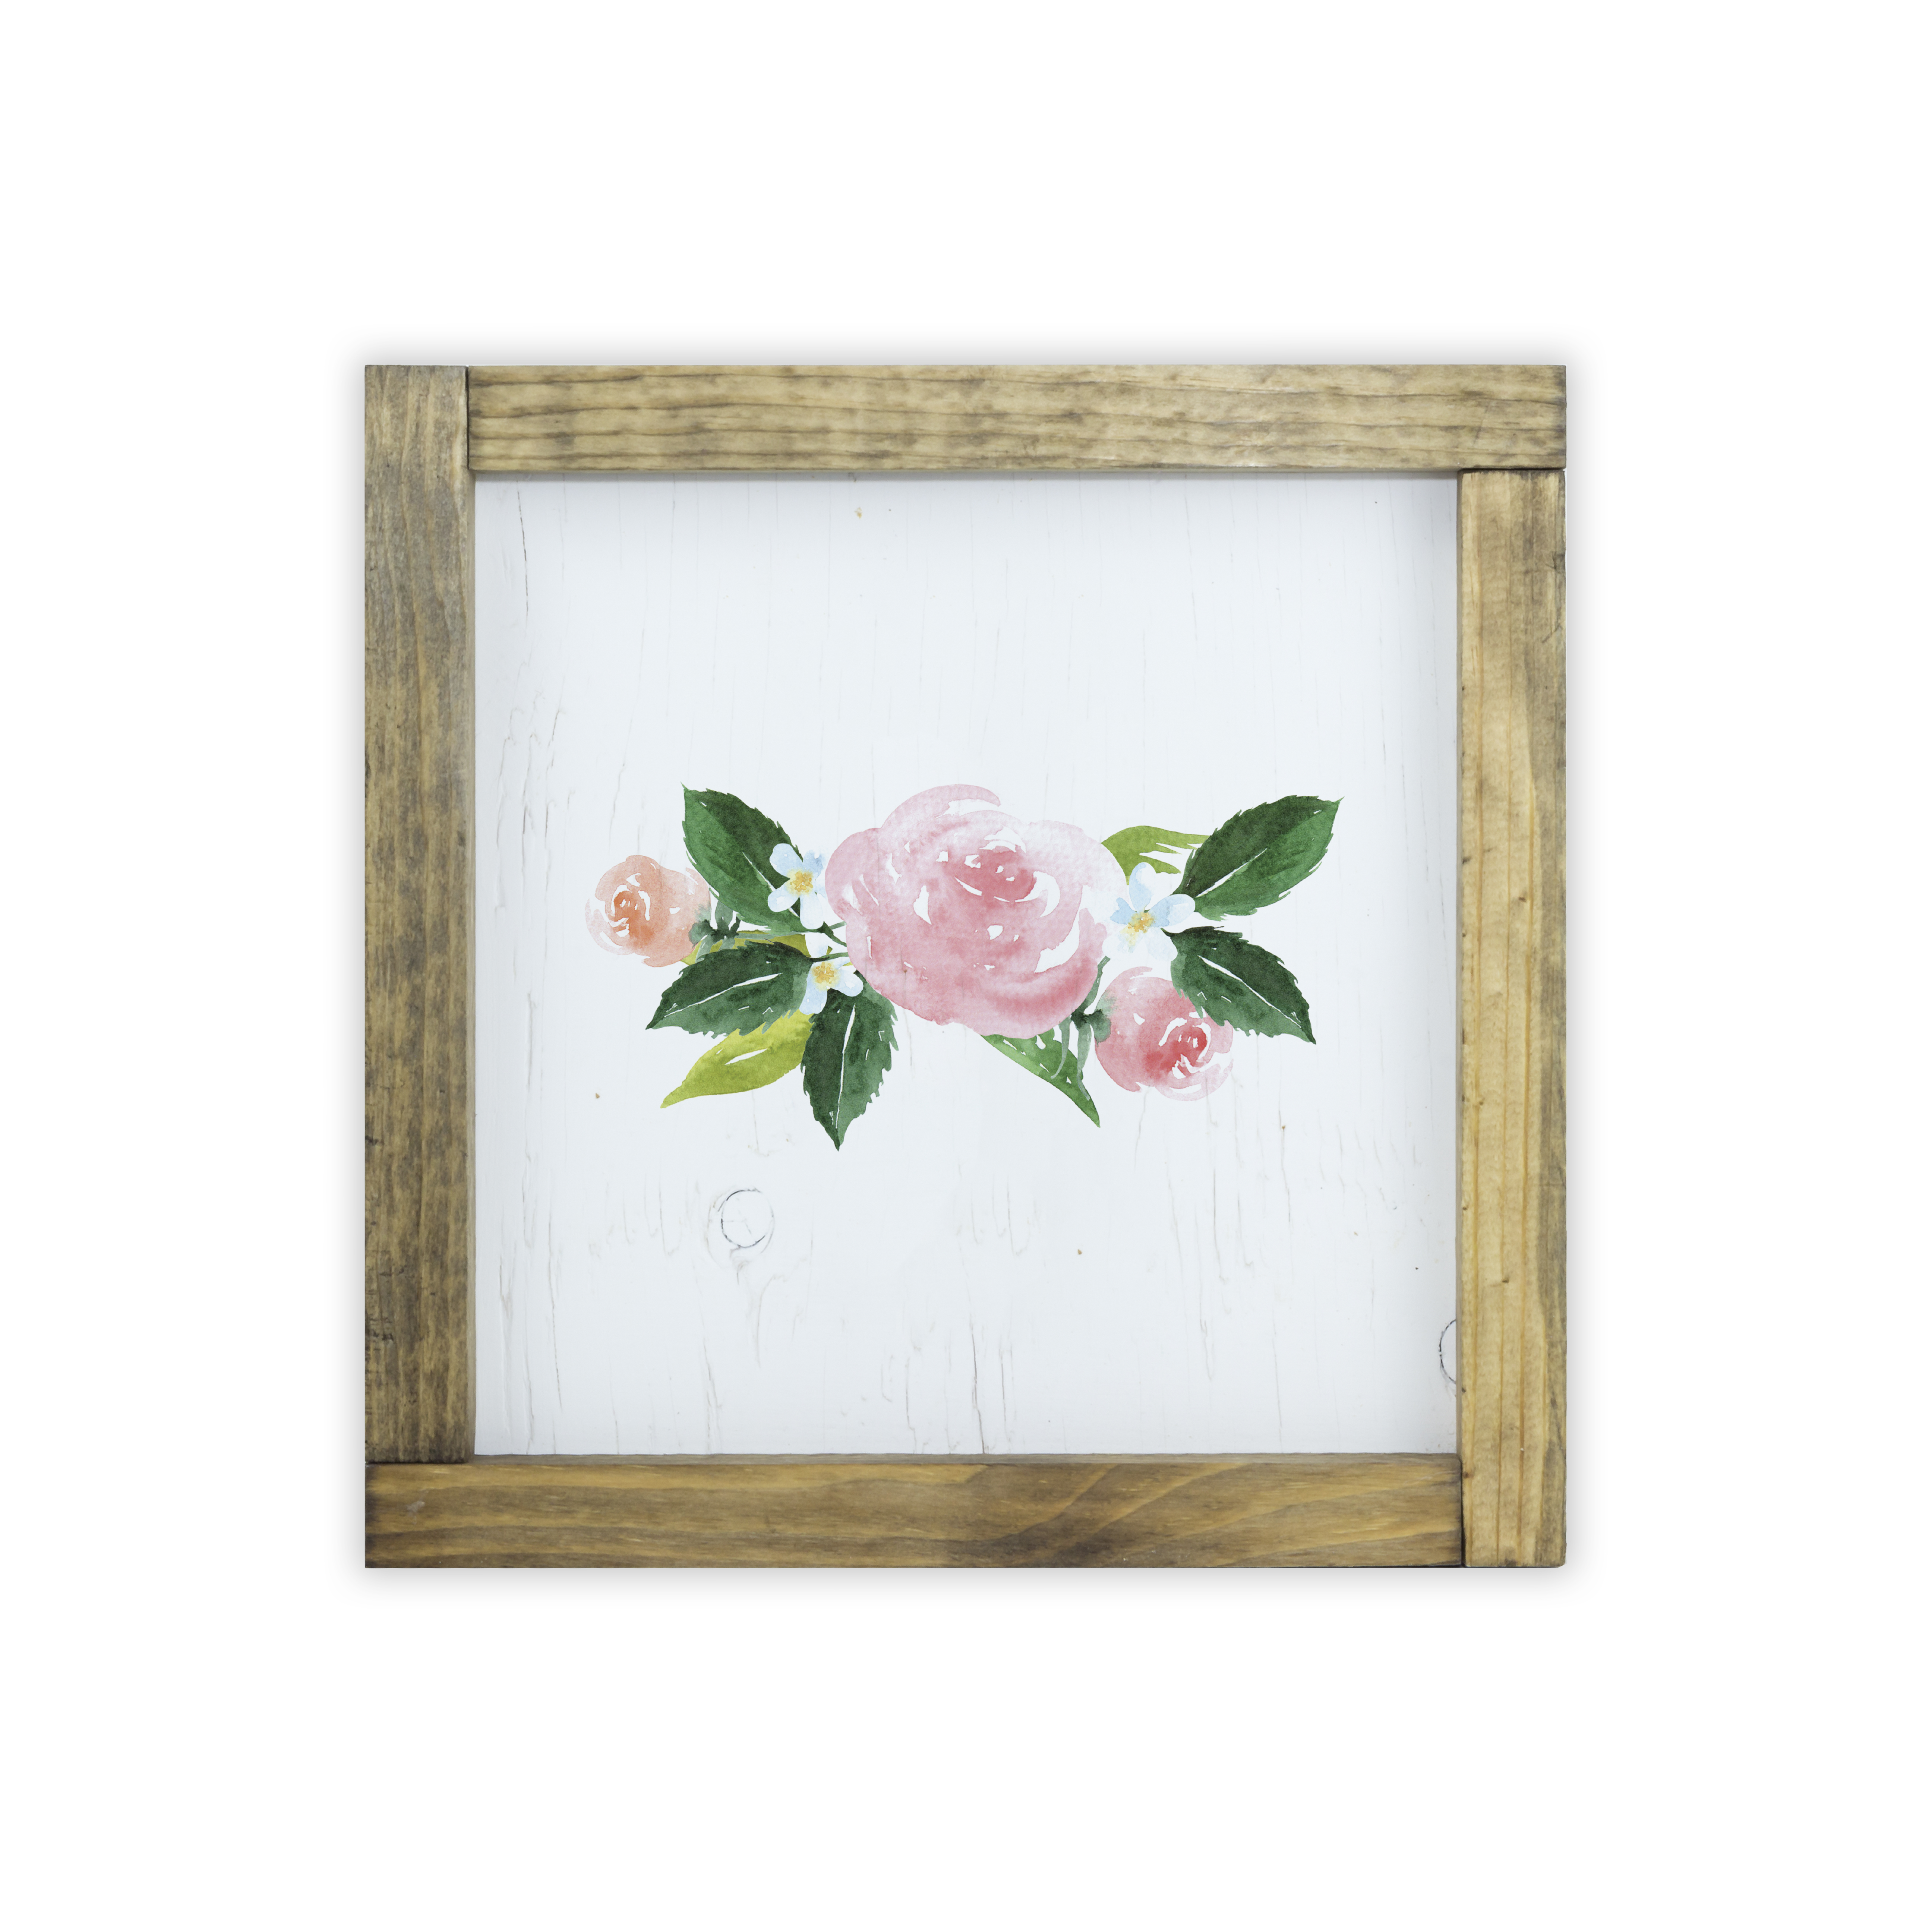 Twelve Timbers Watercolor Frame Print Flower Arrangement